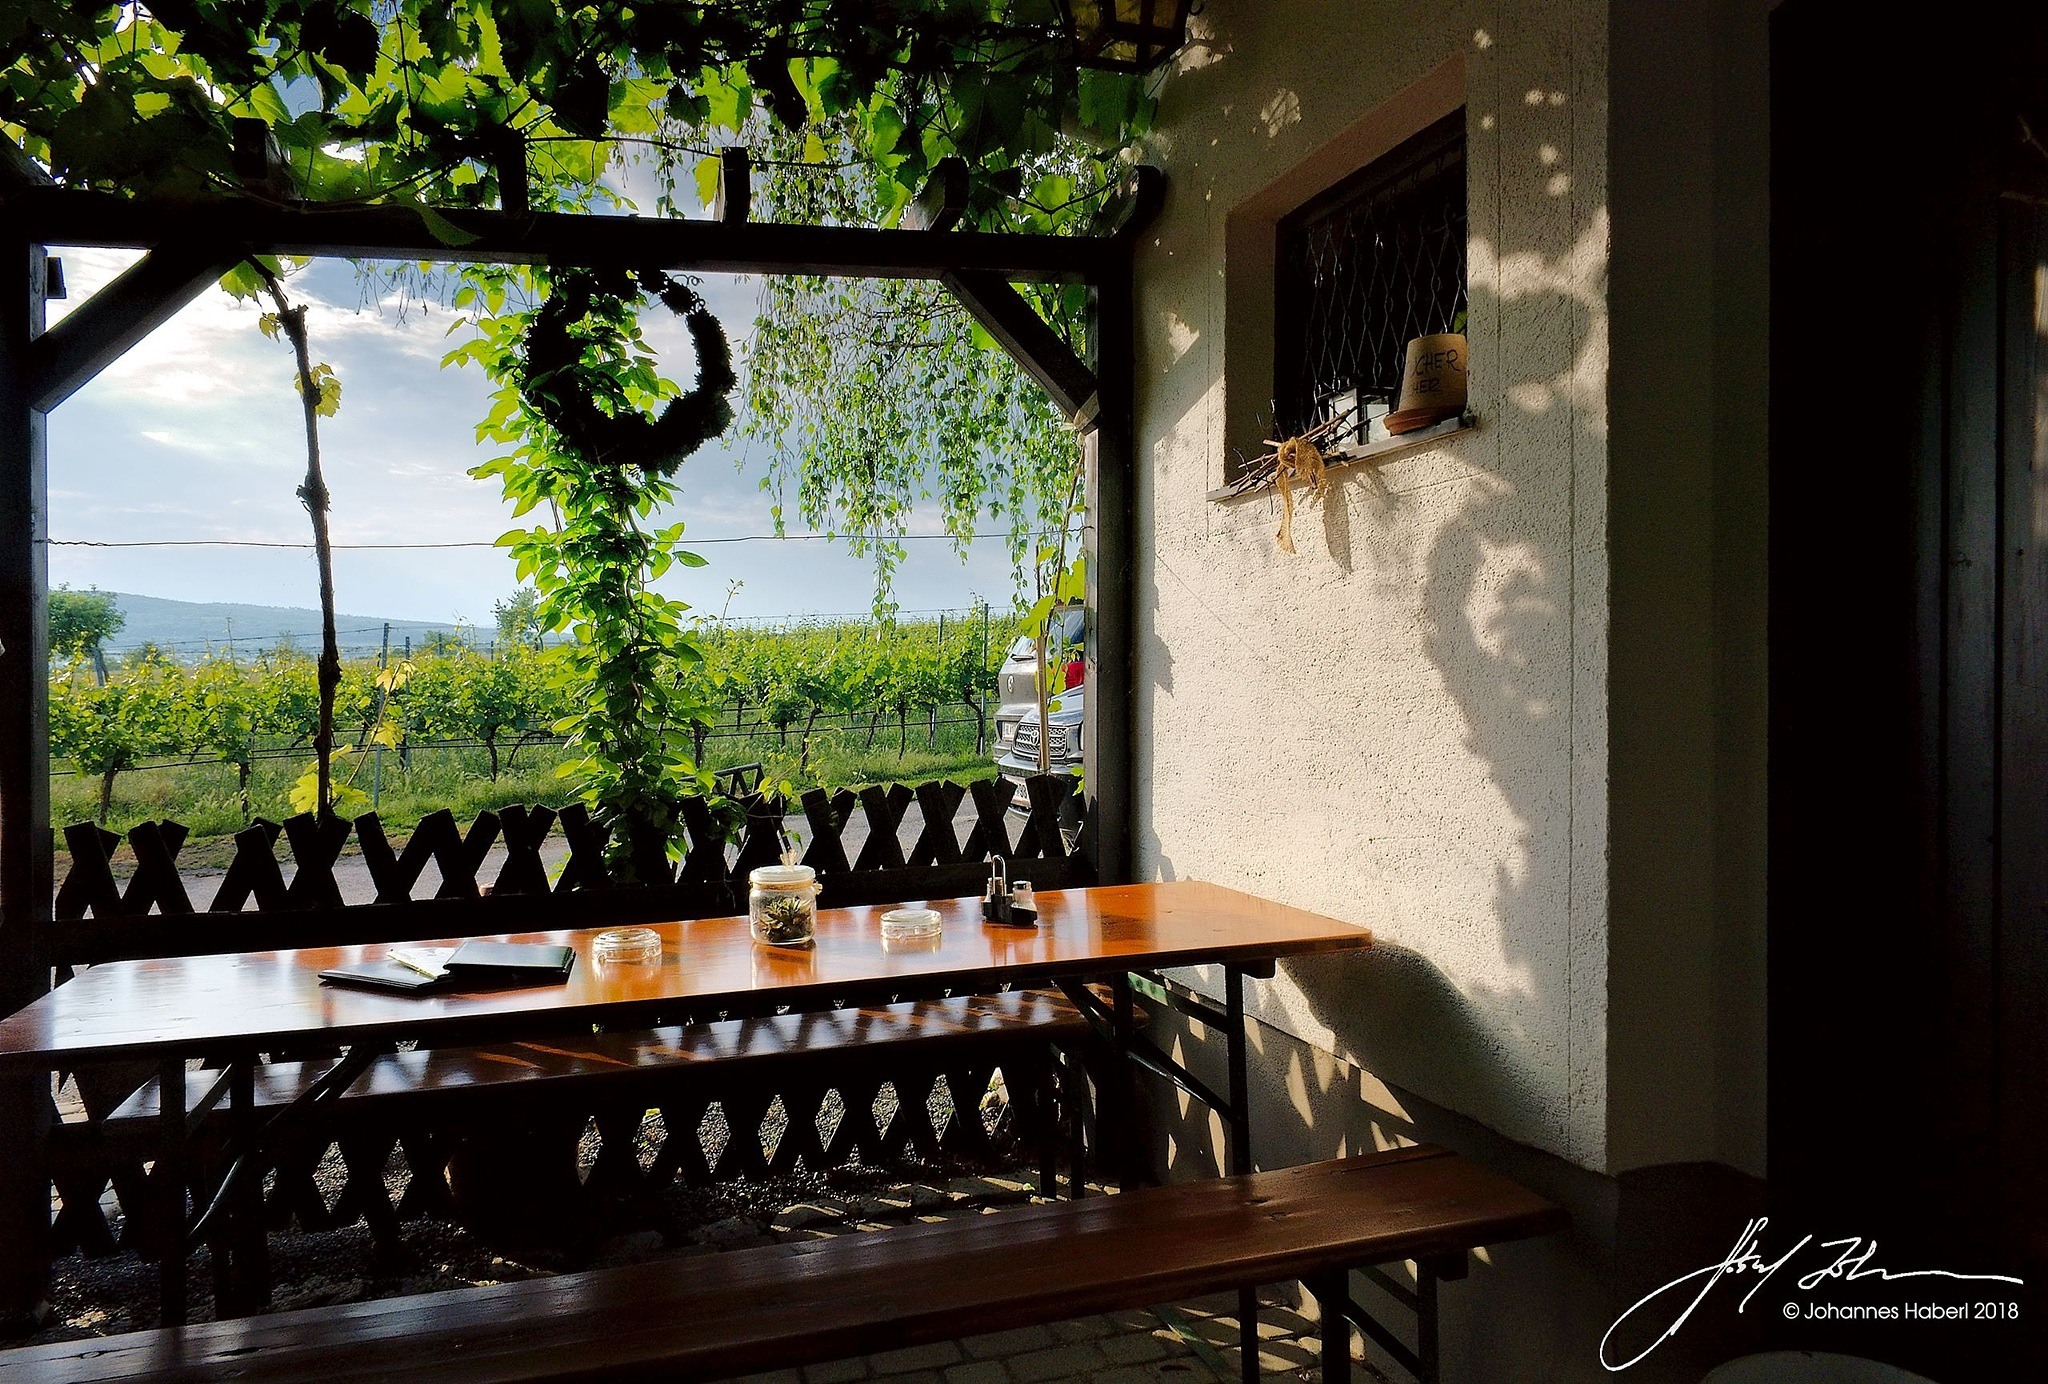 wine tavern with view to the vineyard  by Johannes Haberl